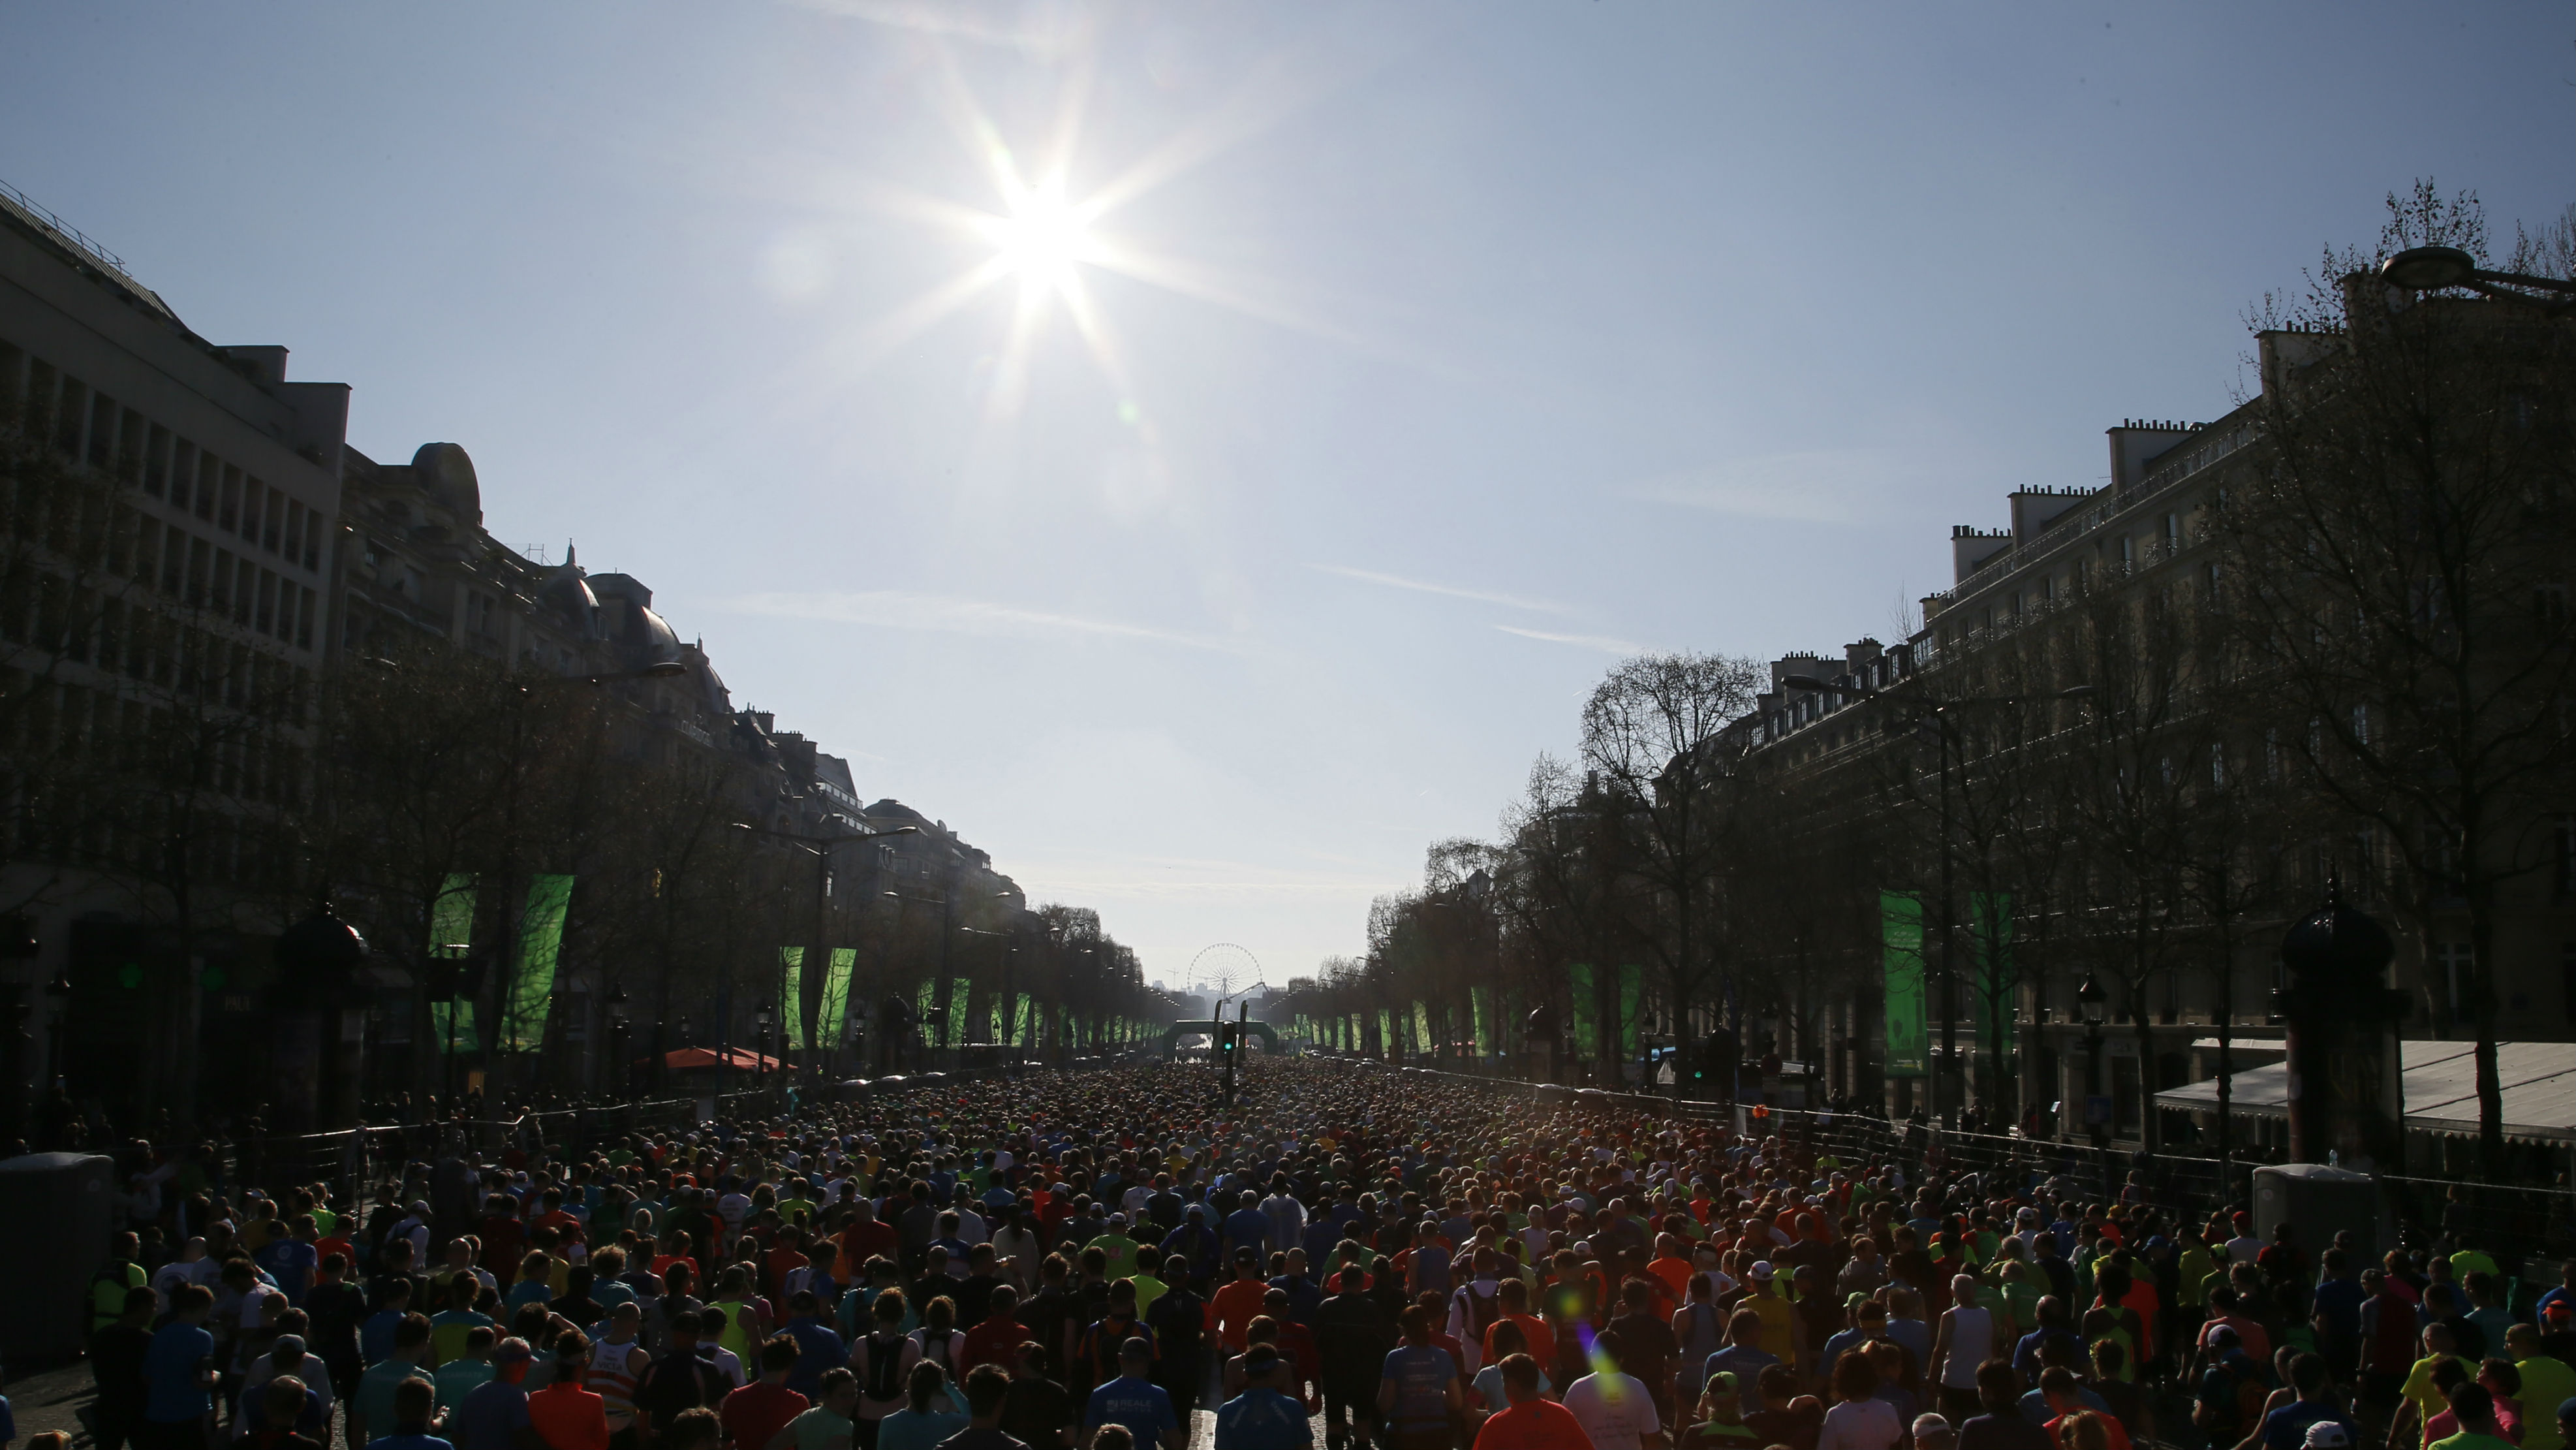 Competitors are seen in silhouette as they run on the Champs Elysees at the start of the 40th Paris Marathon, in Paris, France, April 3, 2016.